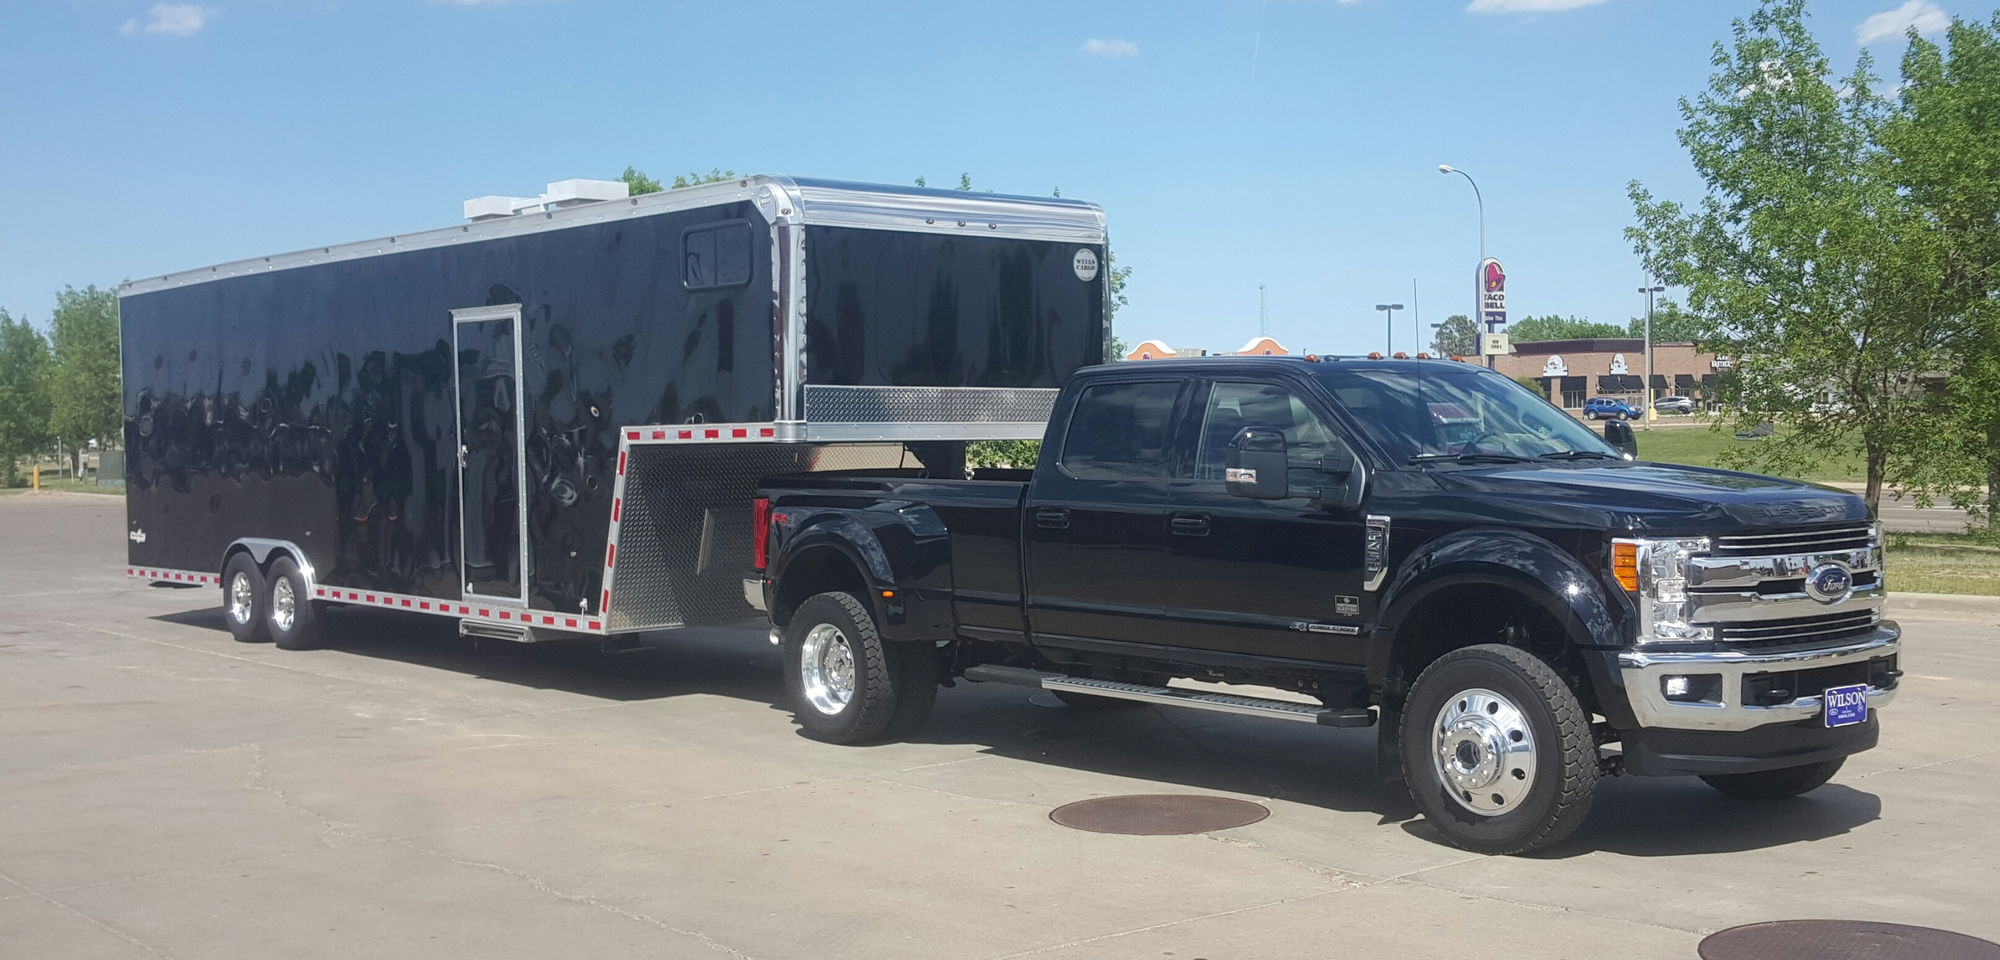 F350 Towing Capacity >> 2017 F450 Lift Pics - Ford Truck Enthusiasts Forums